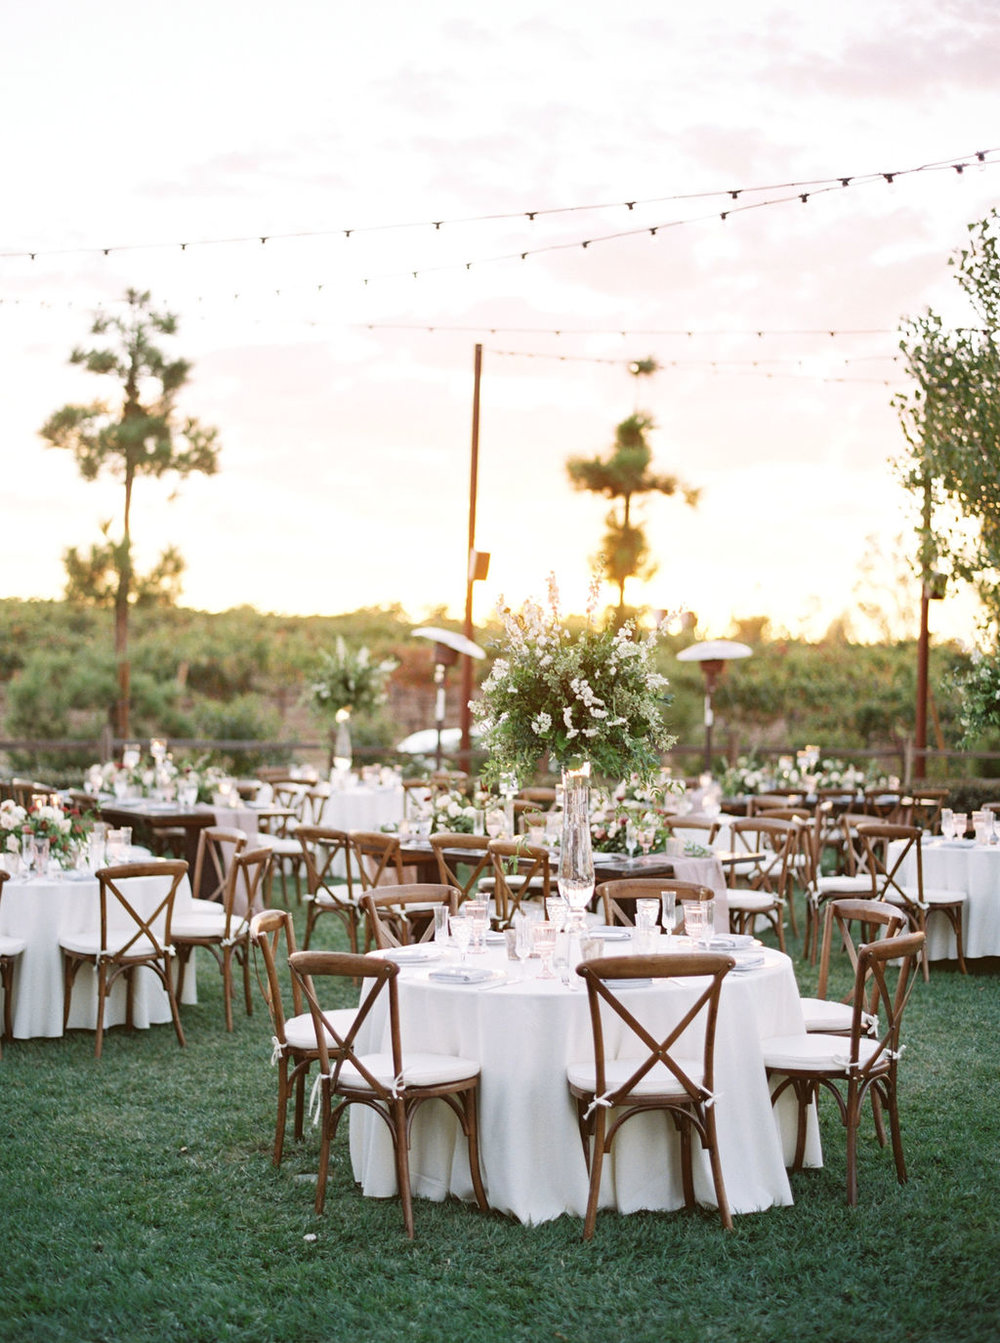 Style me pretty - A Heartwarming Wine-Toned Wedding at Lorimar Winery